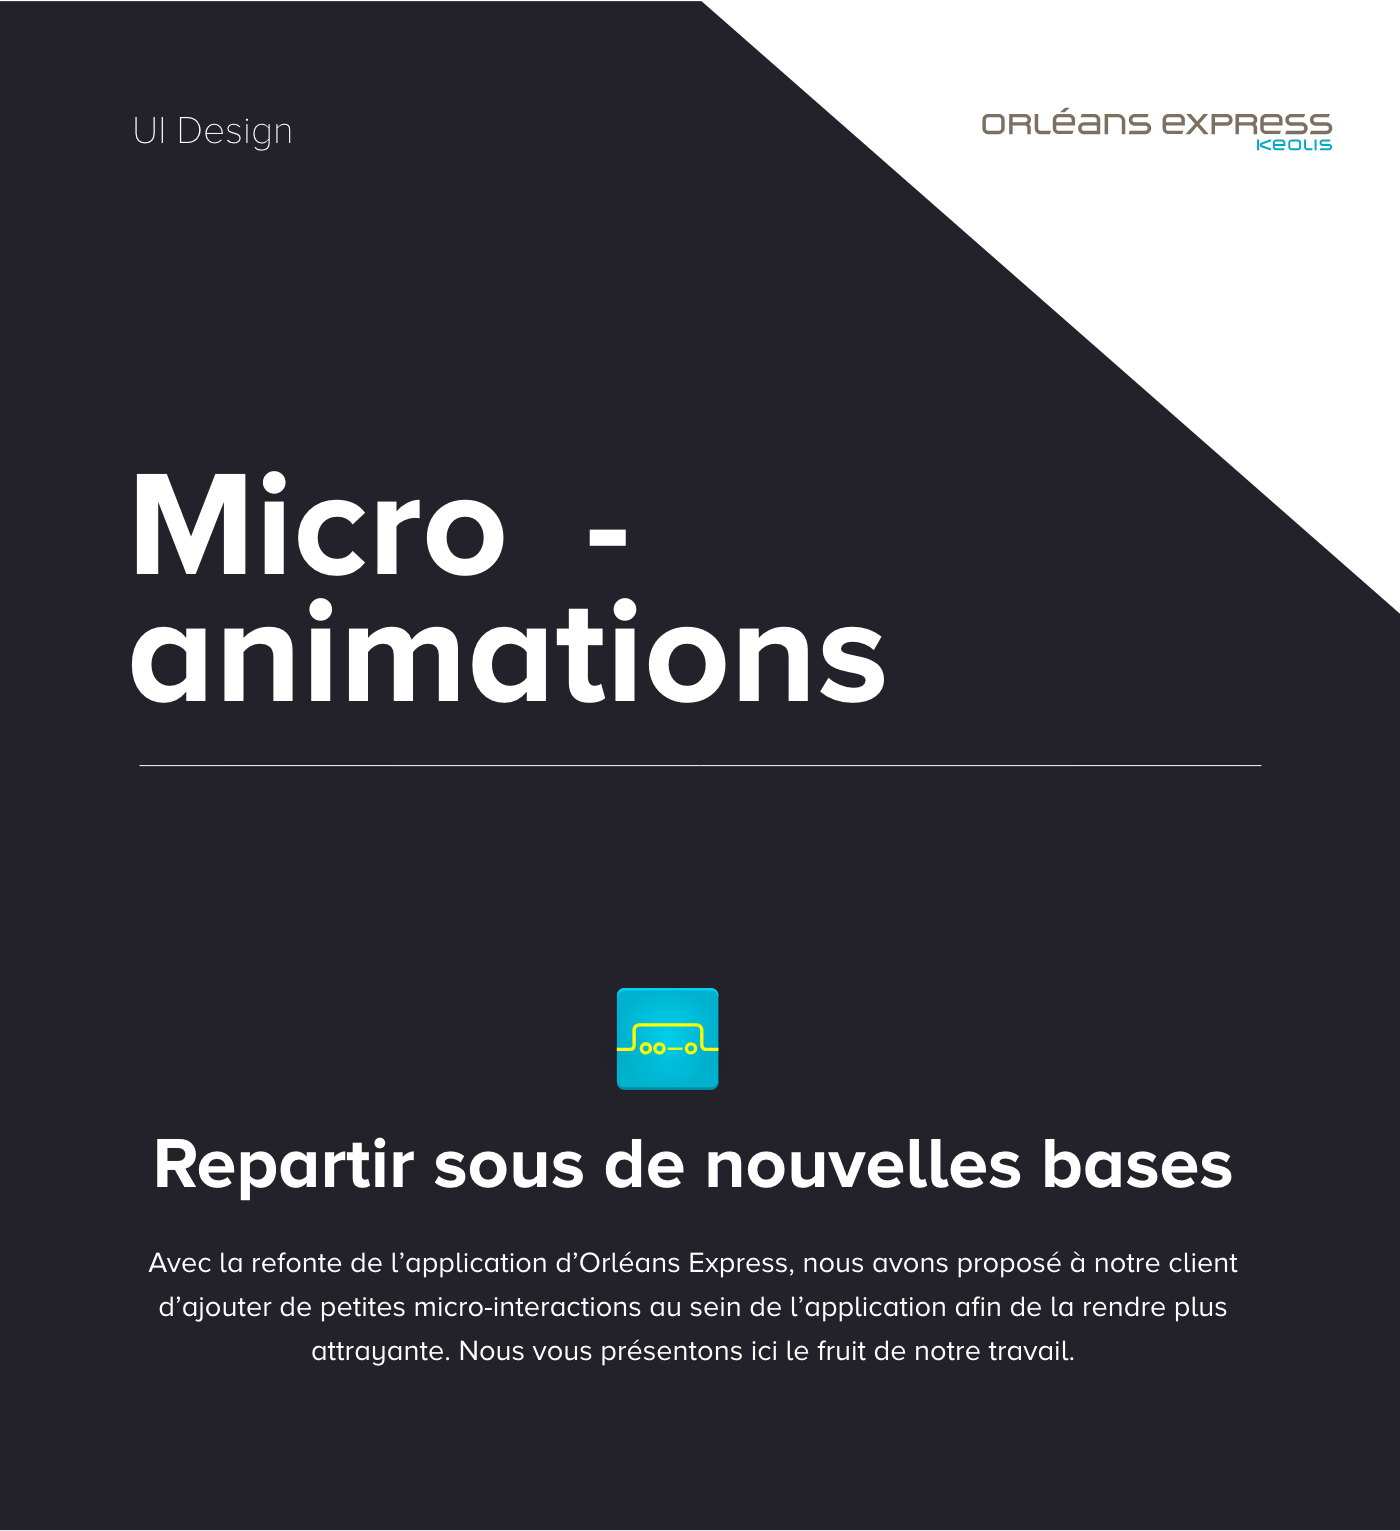 orleans express keolis nomade solutions microanimations animation  ux UI app